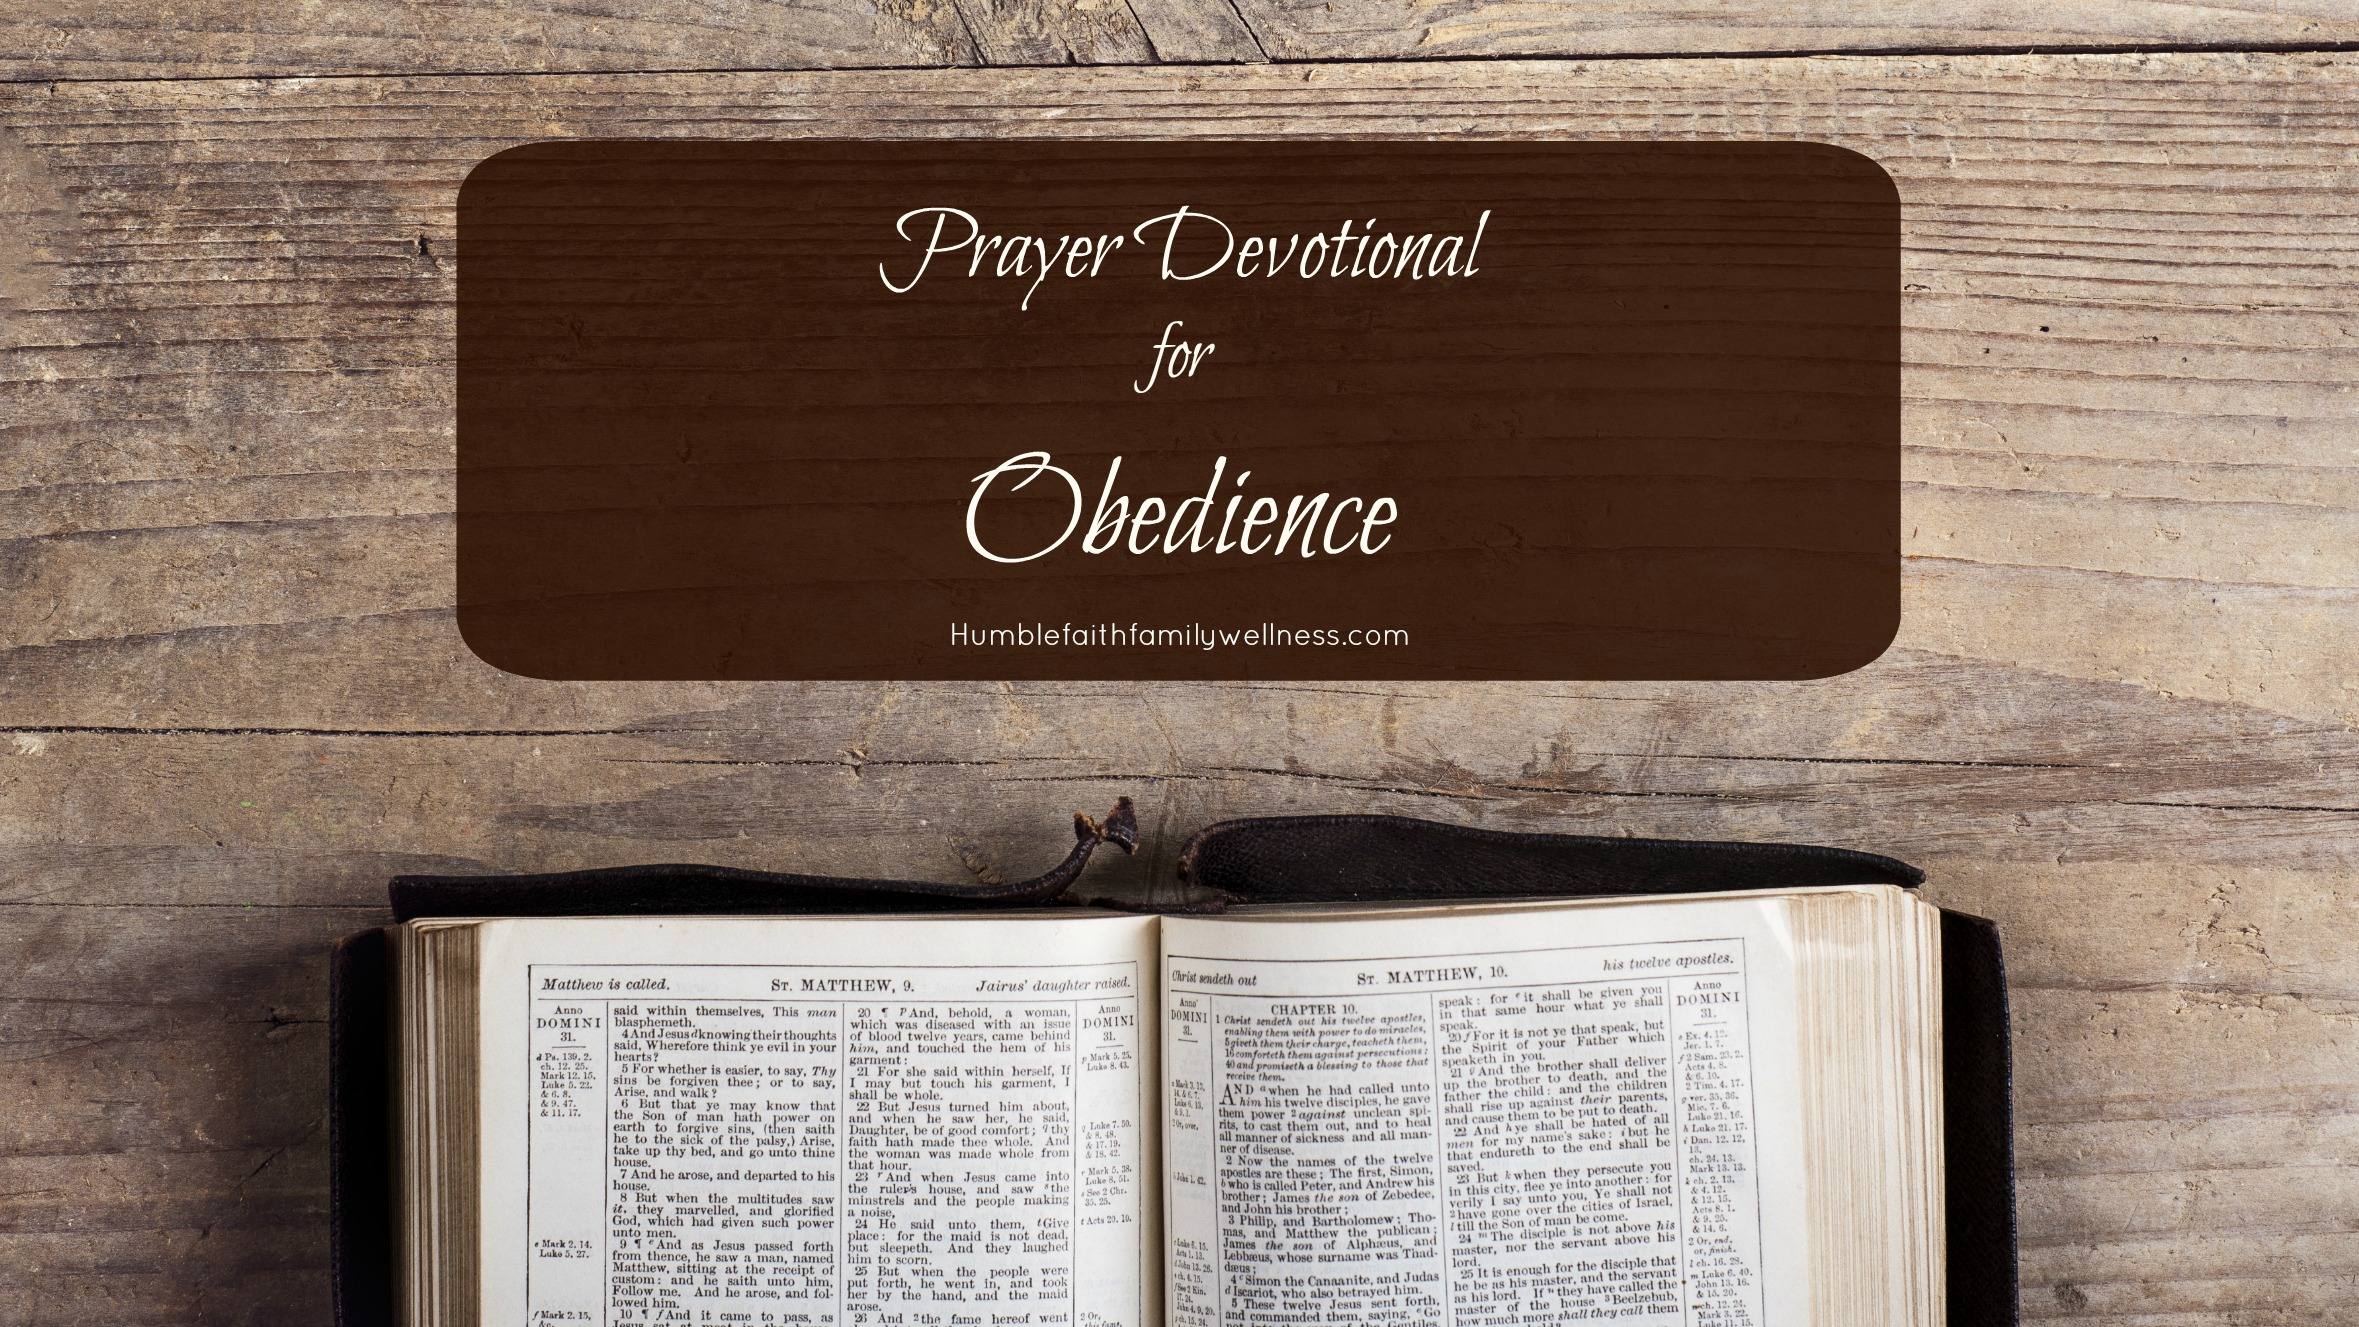 Obedience, Prayer Devotional